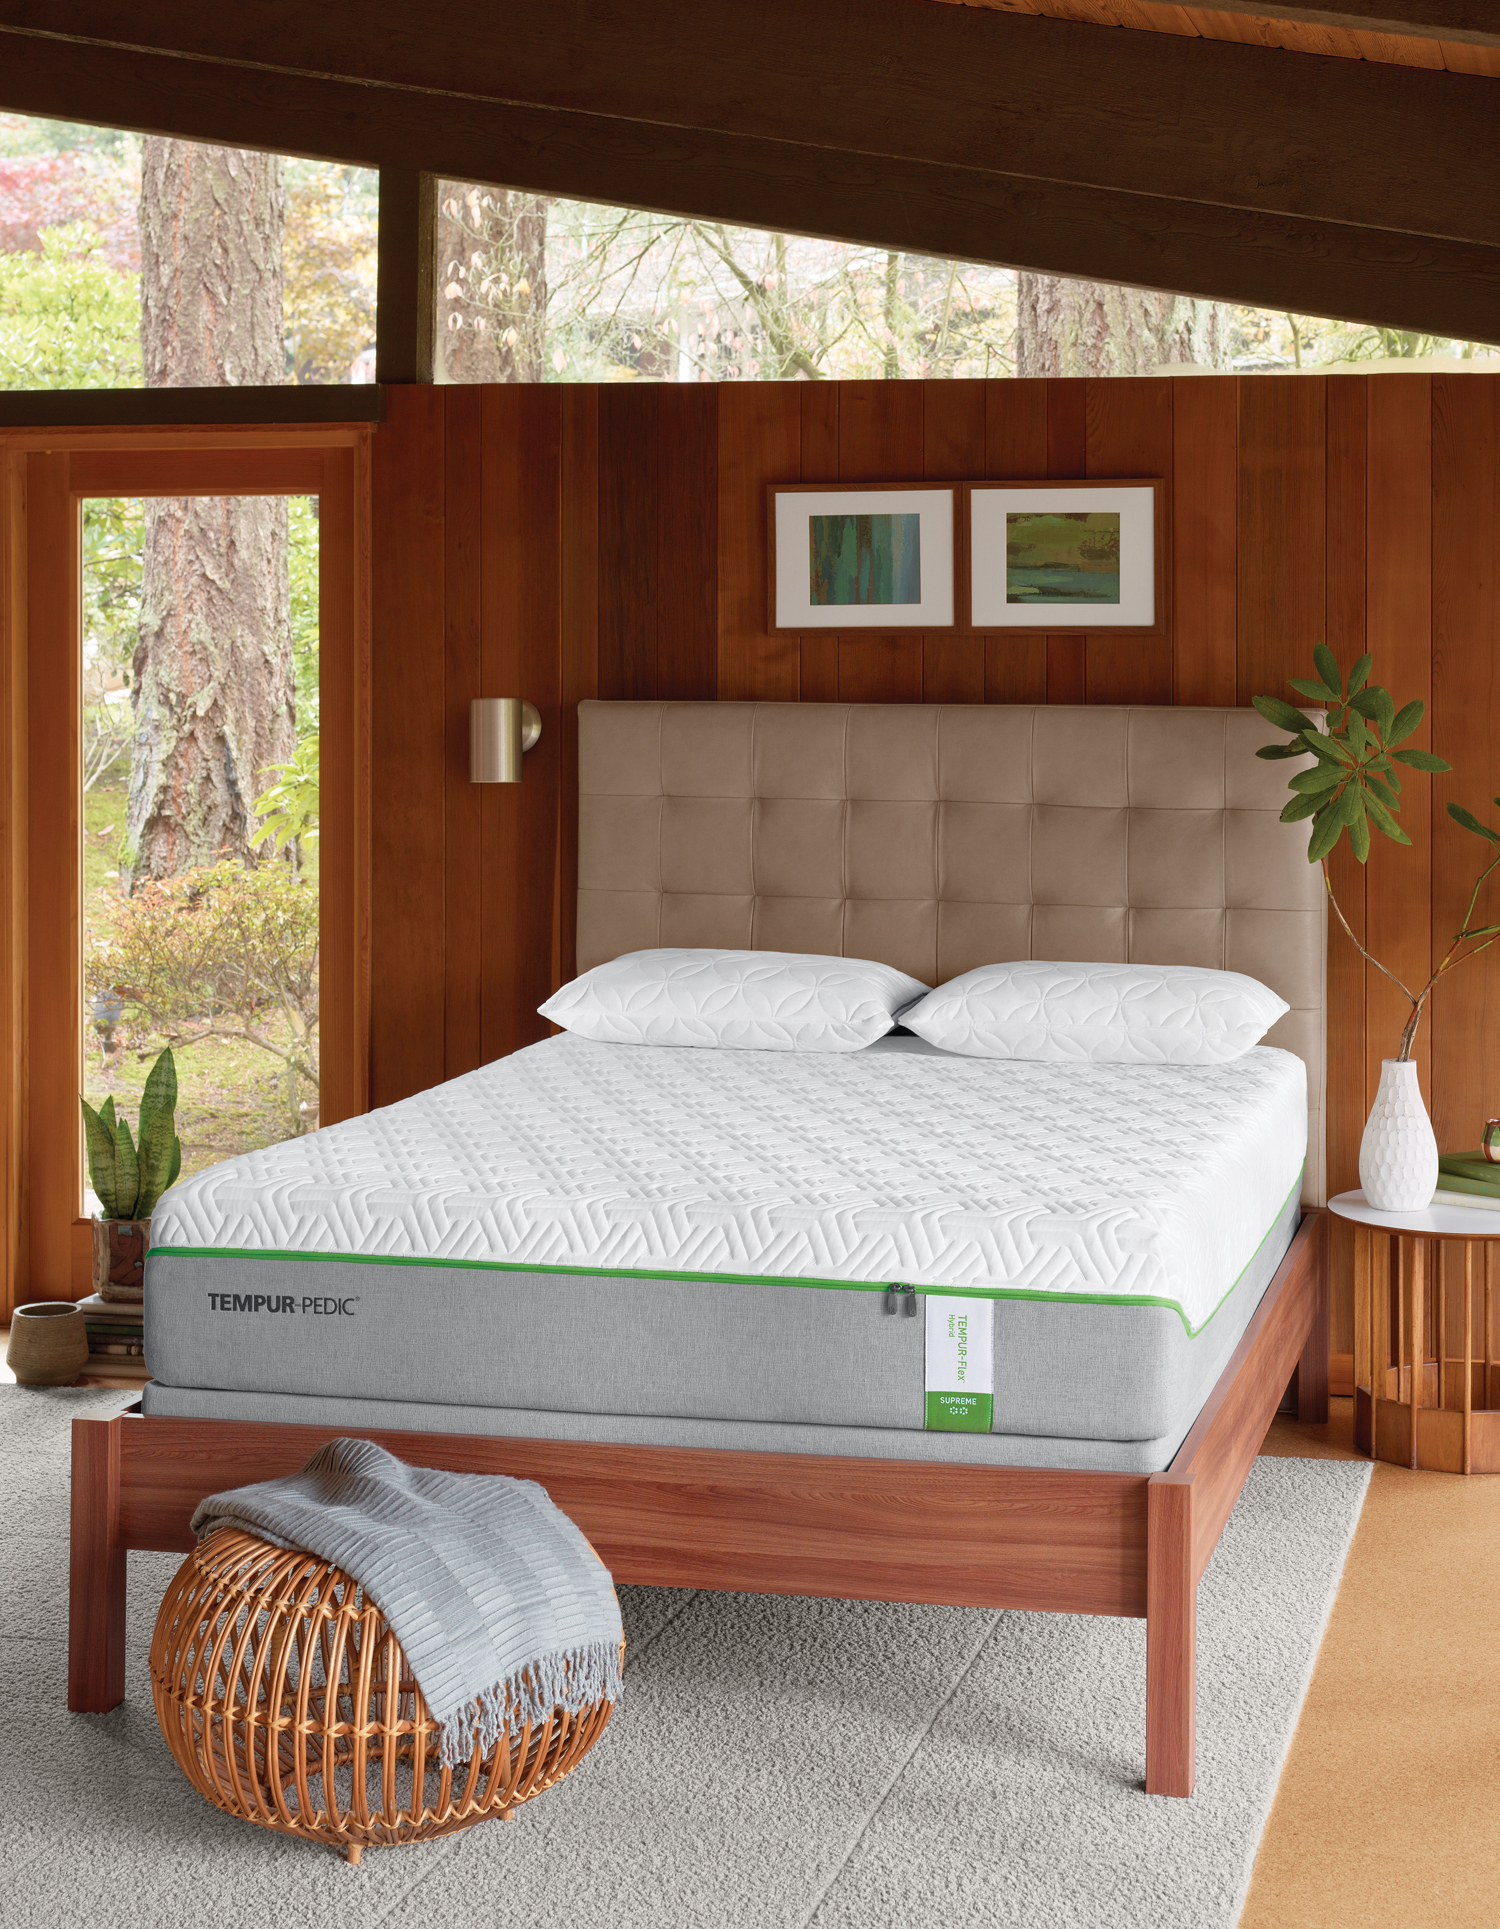 for mattress bed and nightstands best ever do get pedic king bathroom cost inspiration the mattresses go tempurpedic softer on files tempur bedroom size image sale ideas kitchen